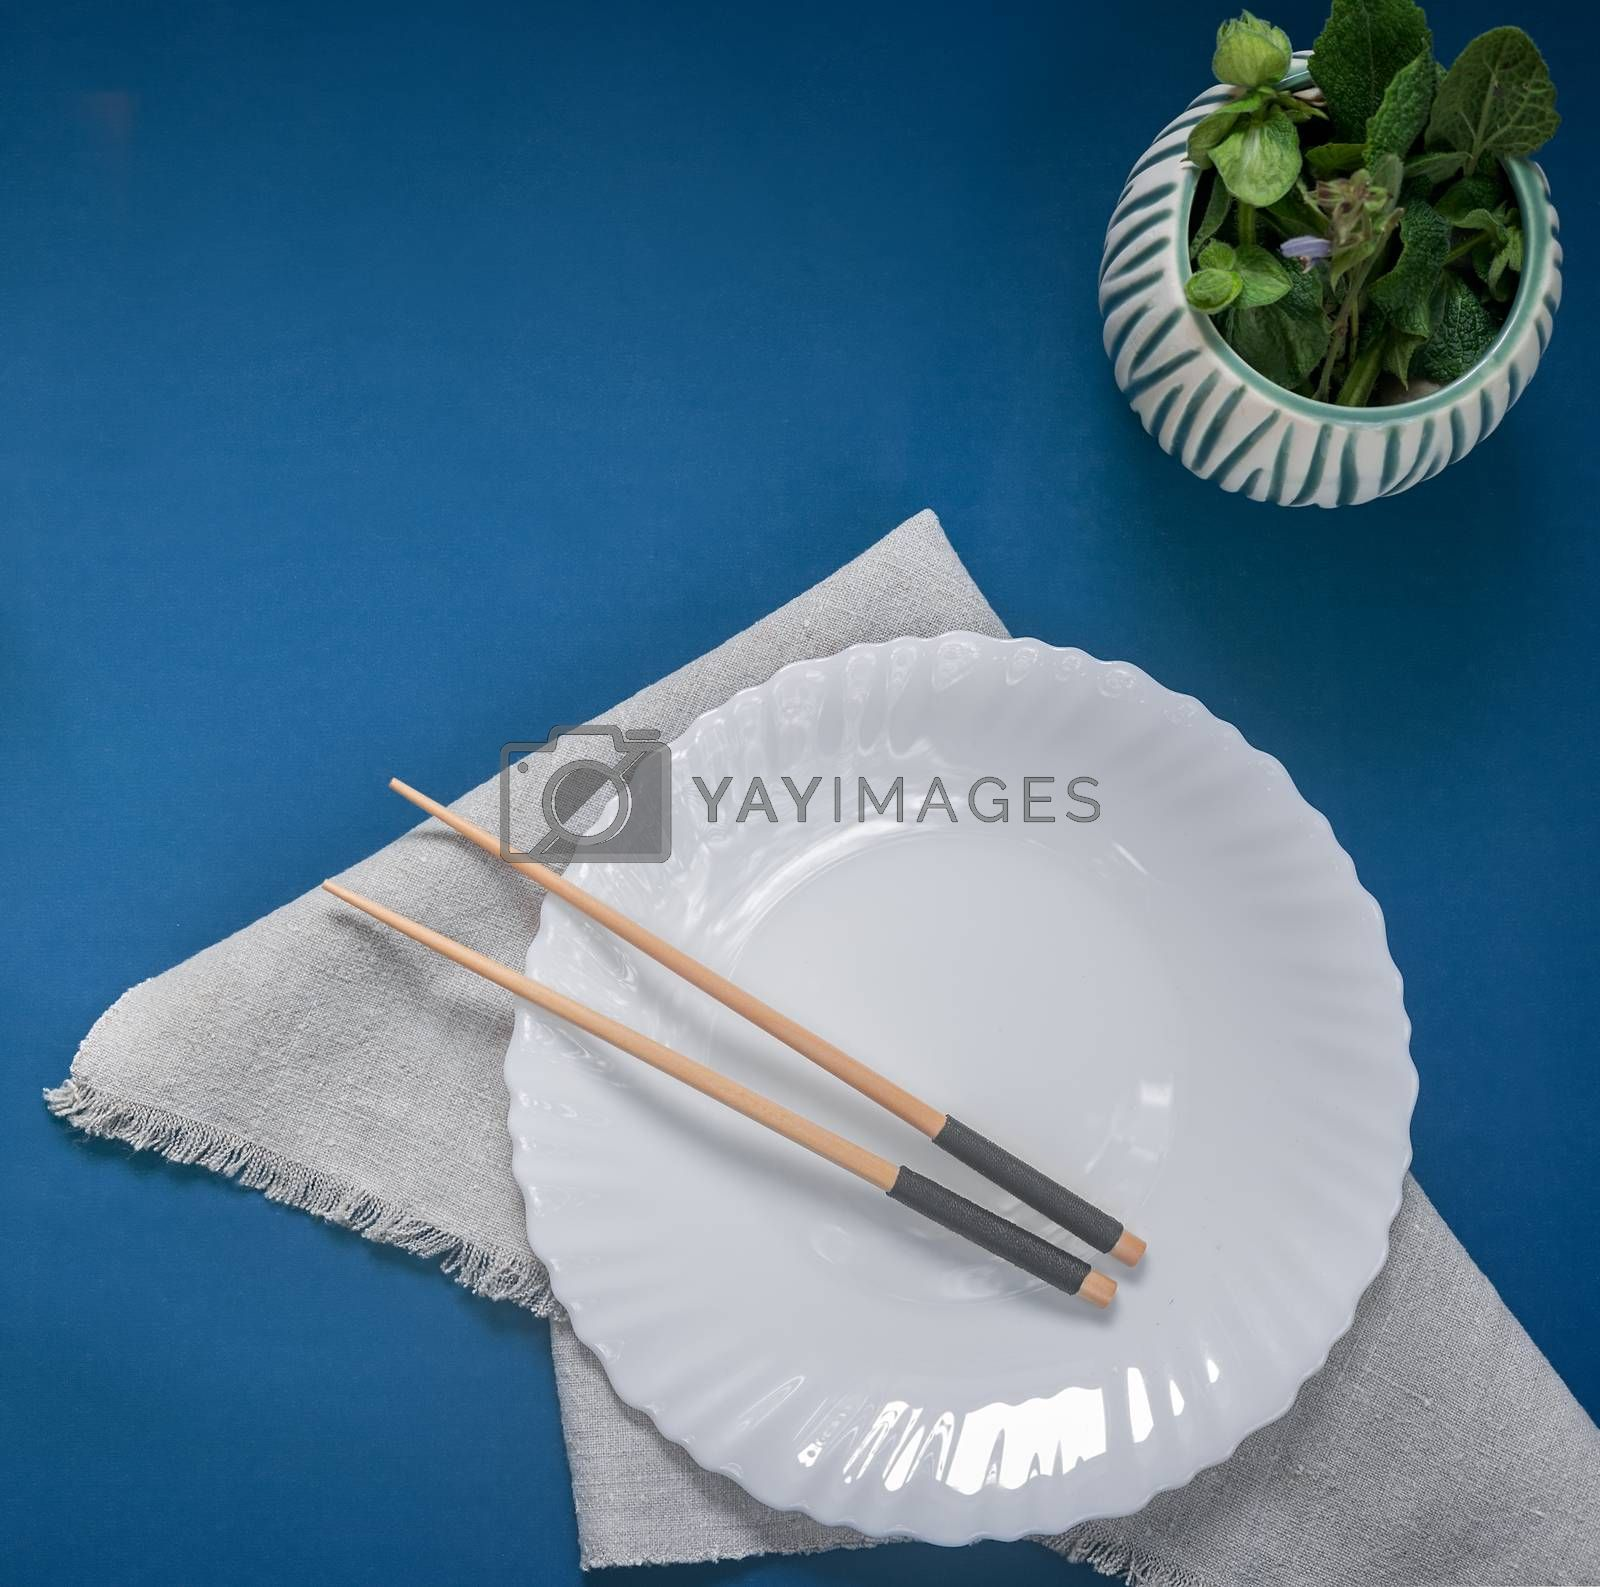 Wooden chopsticks and a plate on the table by georgina198